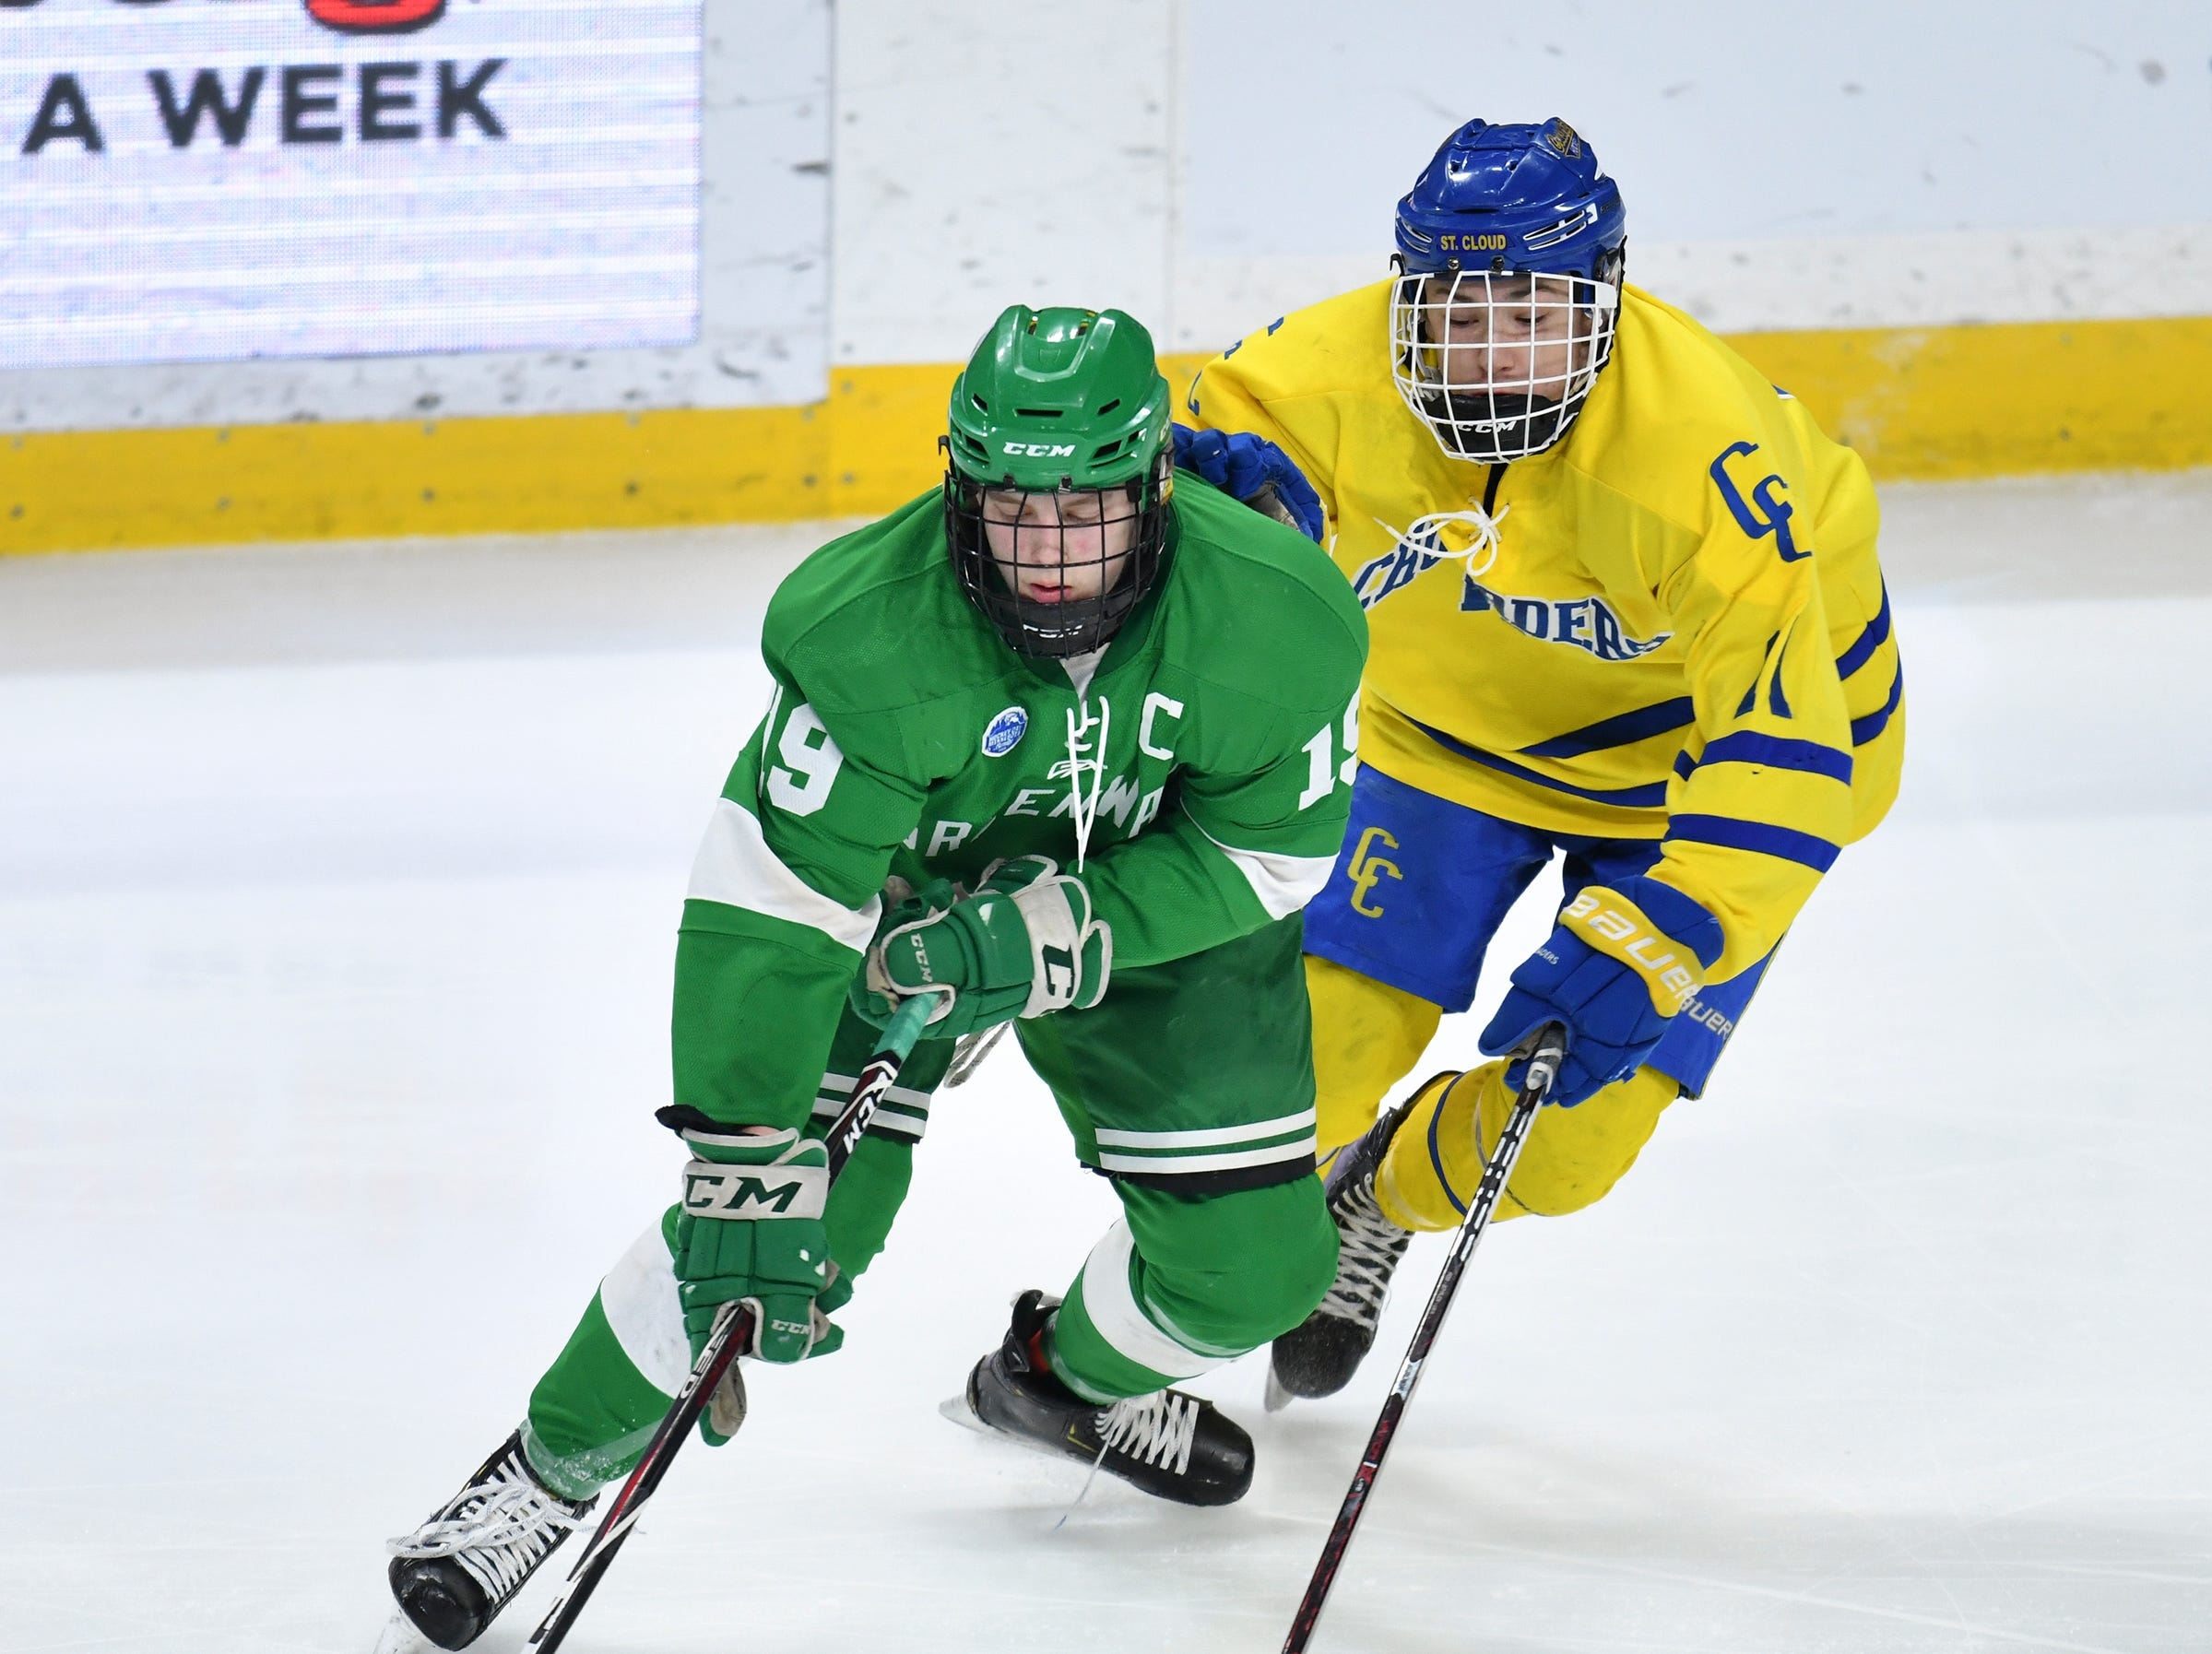 Cathedral's Ethan Cumming works against Greenway's Nikolai Rajala  during the state Class A championship game Saturday, March 9, 2019, at the Xcel Energy Center in St. Paul.